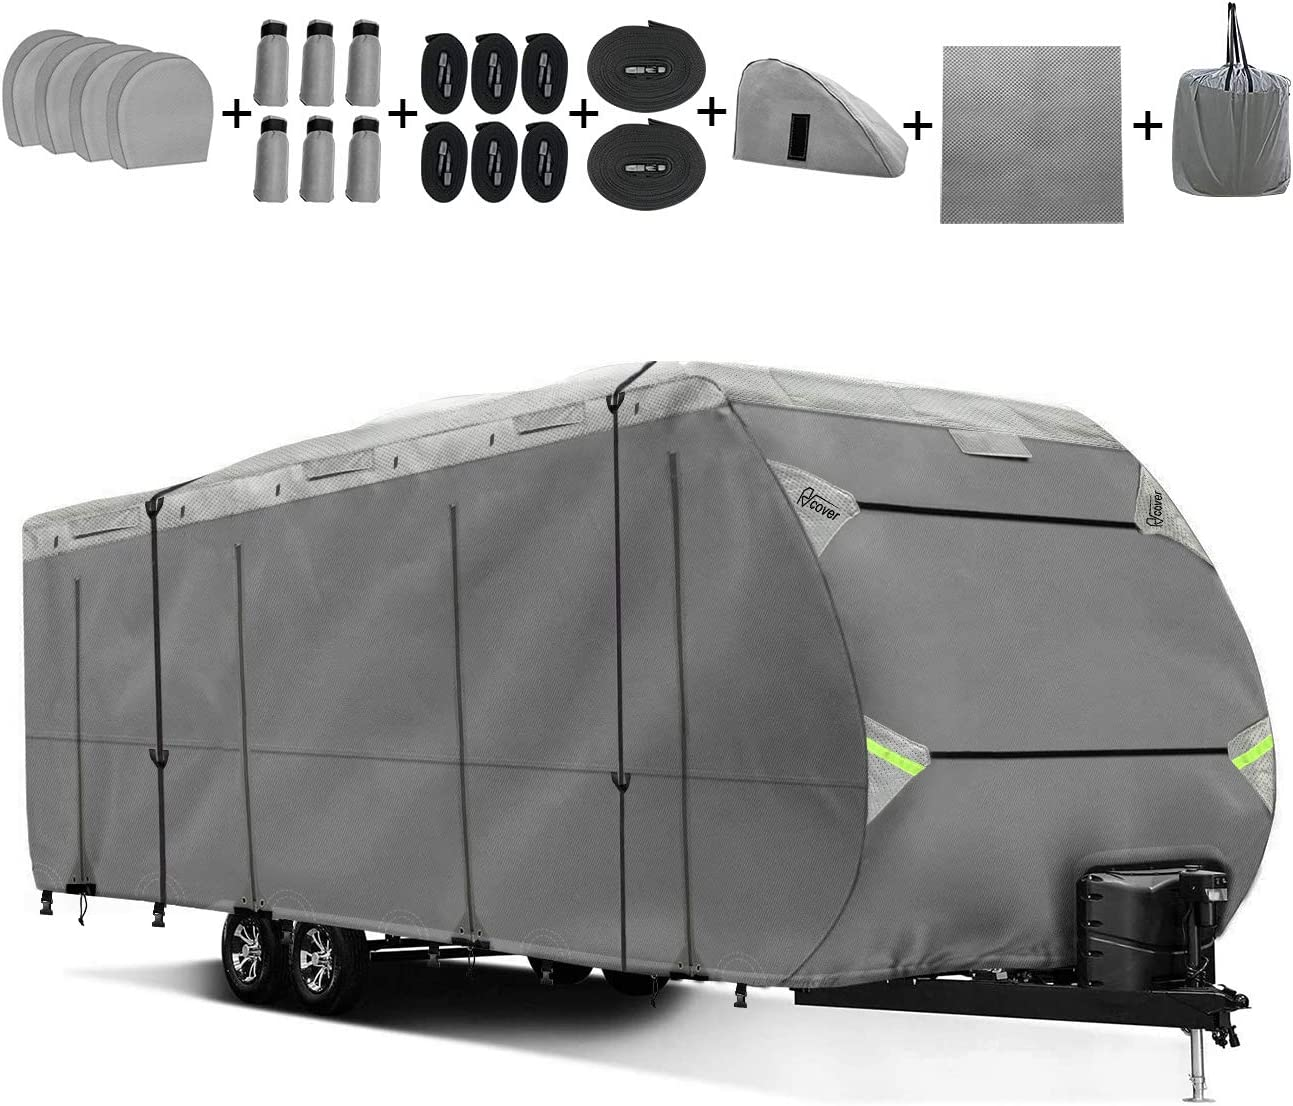 Upgraded Travel Trailer RV Cover Non-Woven Fabric Anti-Aging Waterproof Durable Design Fits 30' - 33' TT RV Camper with Various Accessories